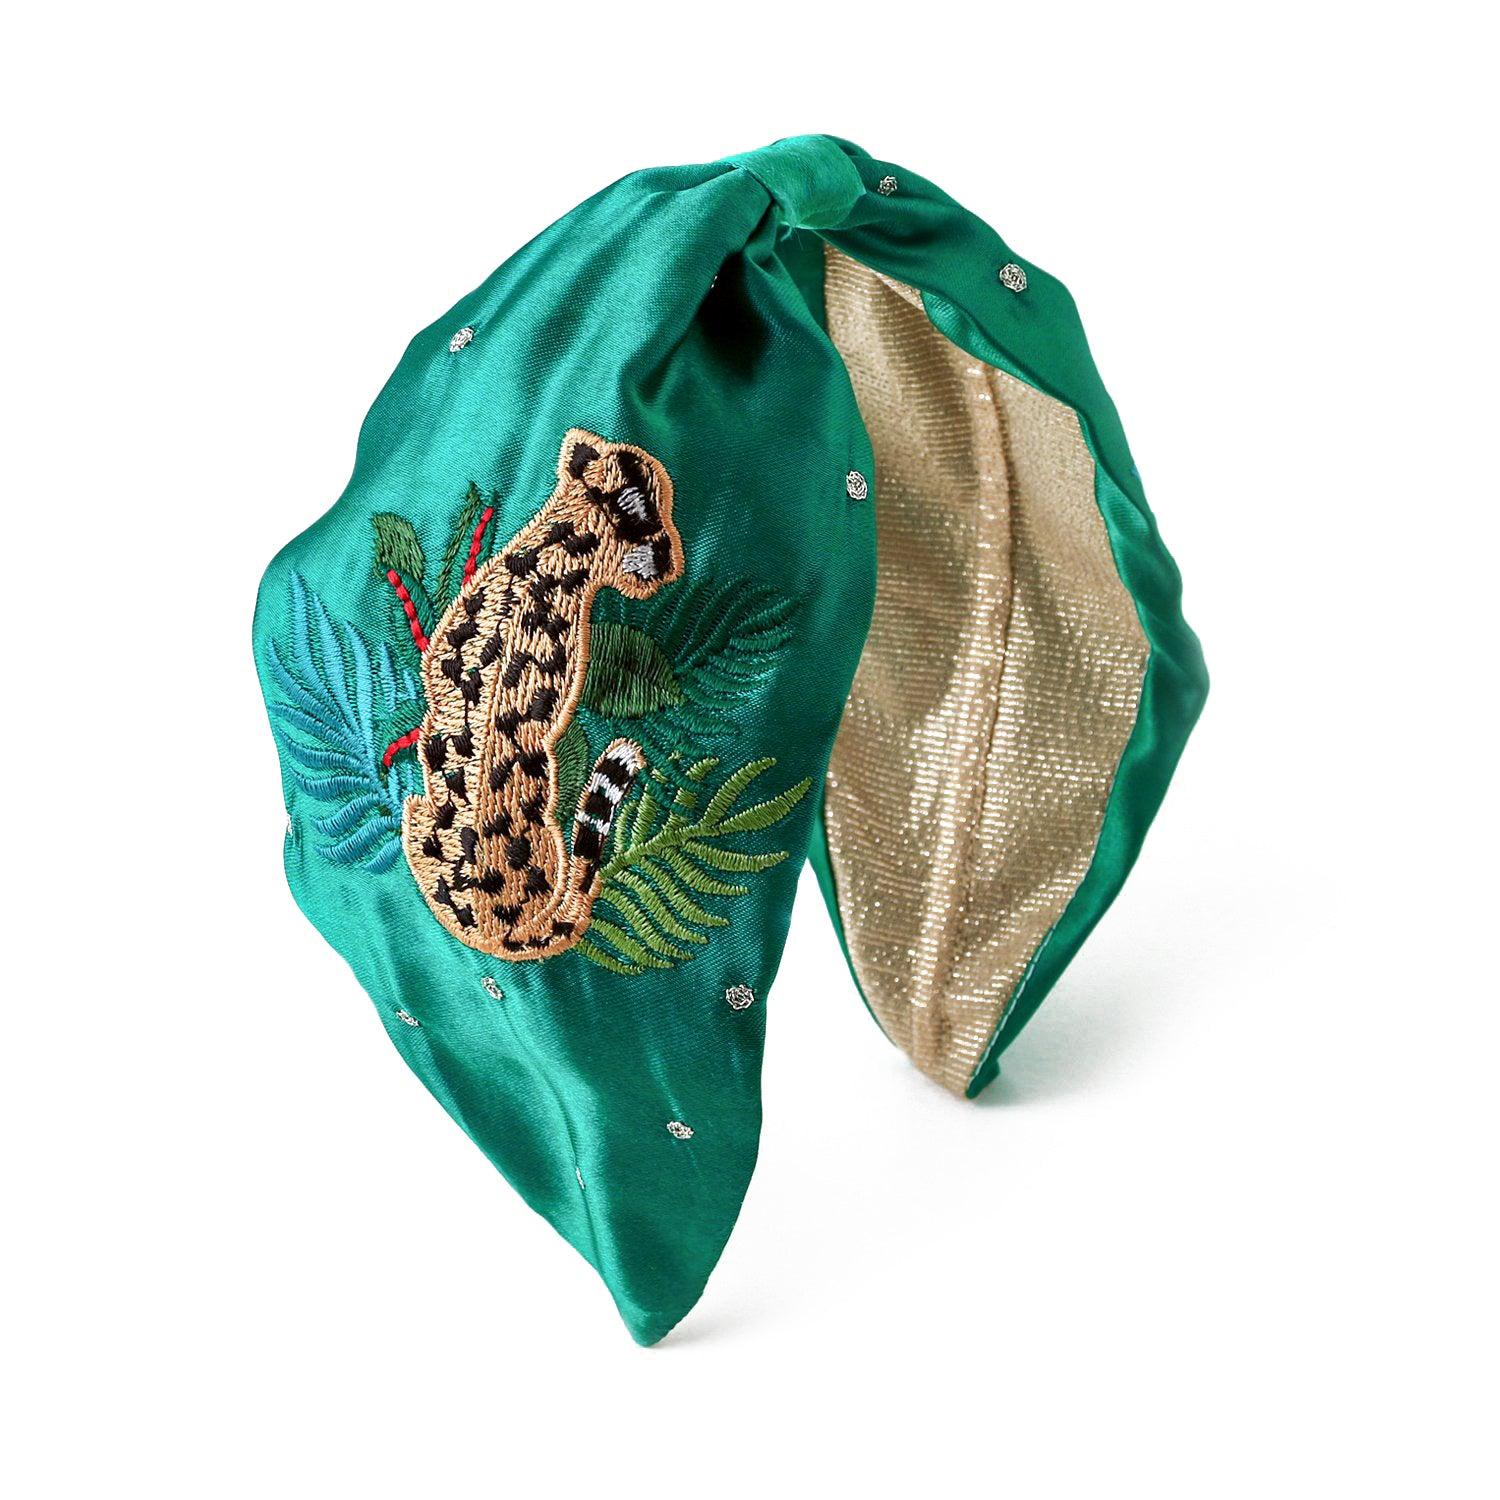 Leopard Embroidered Turban Headband - Emerald